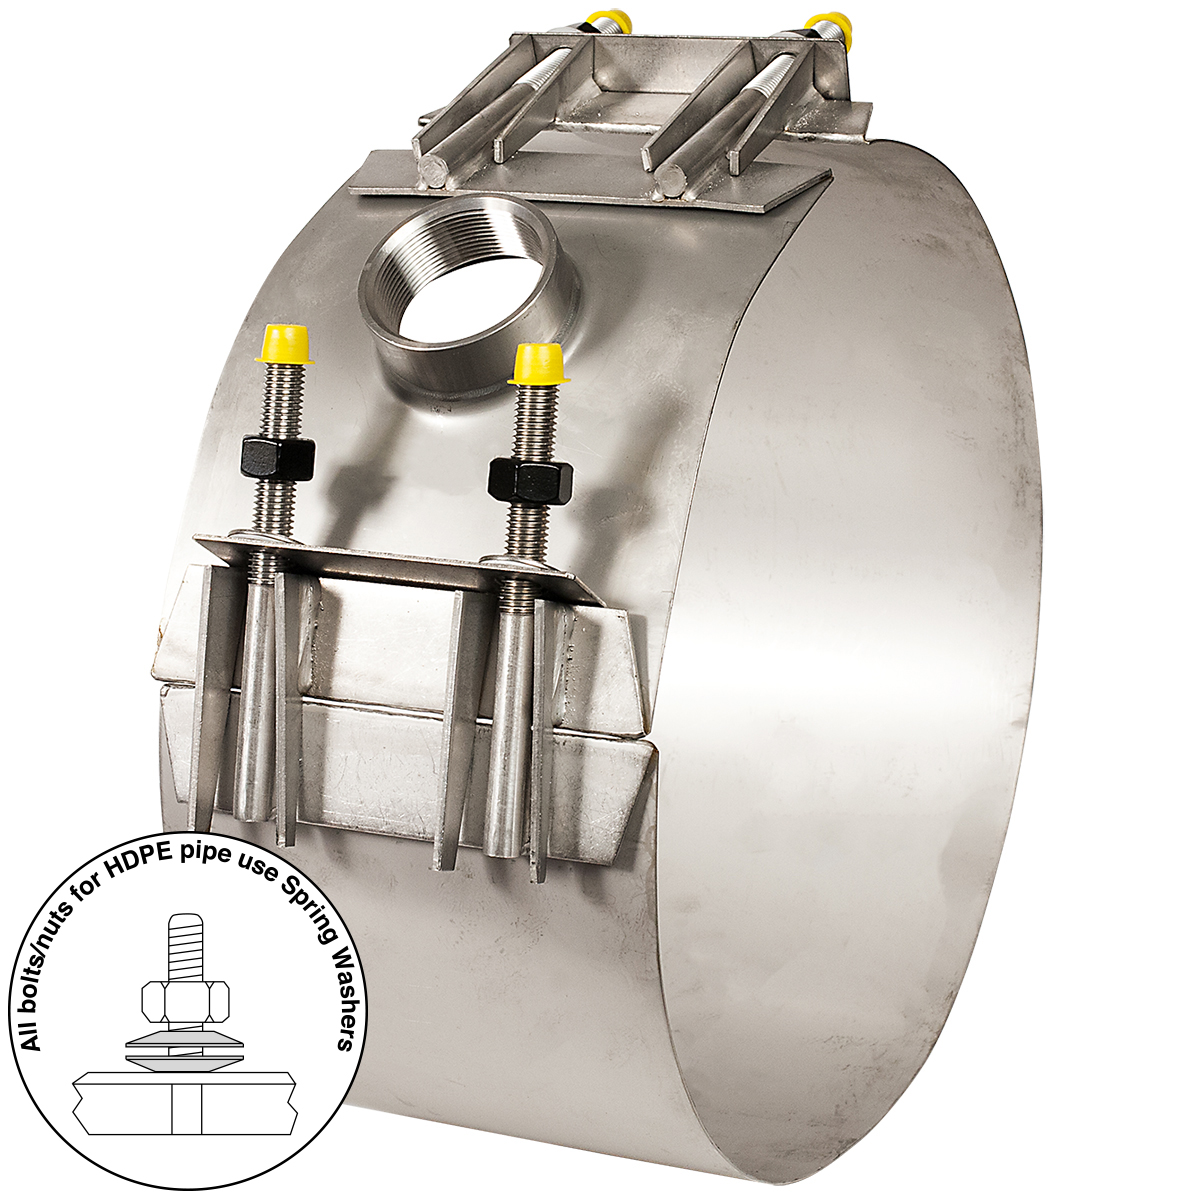 305-H - Stainless steel service saddle for HDPE pipeNominal Sizes10 - 12 inchesWorking PressureUp to 150 psiPipe CompatibilityHDPE pipe with a minimum wall thickness of SDR26